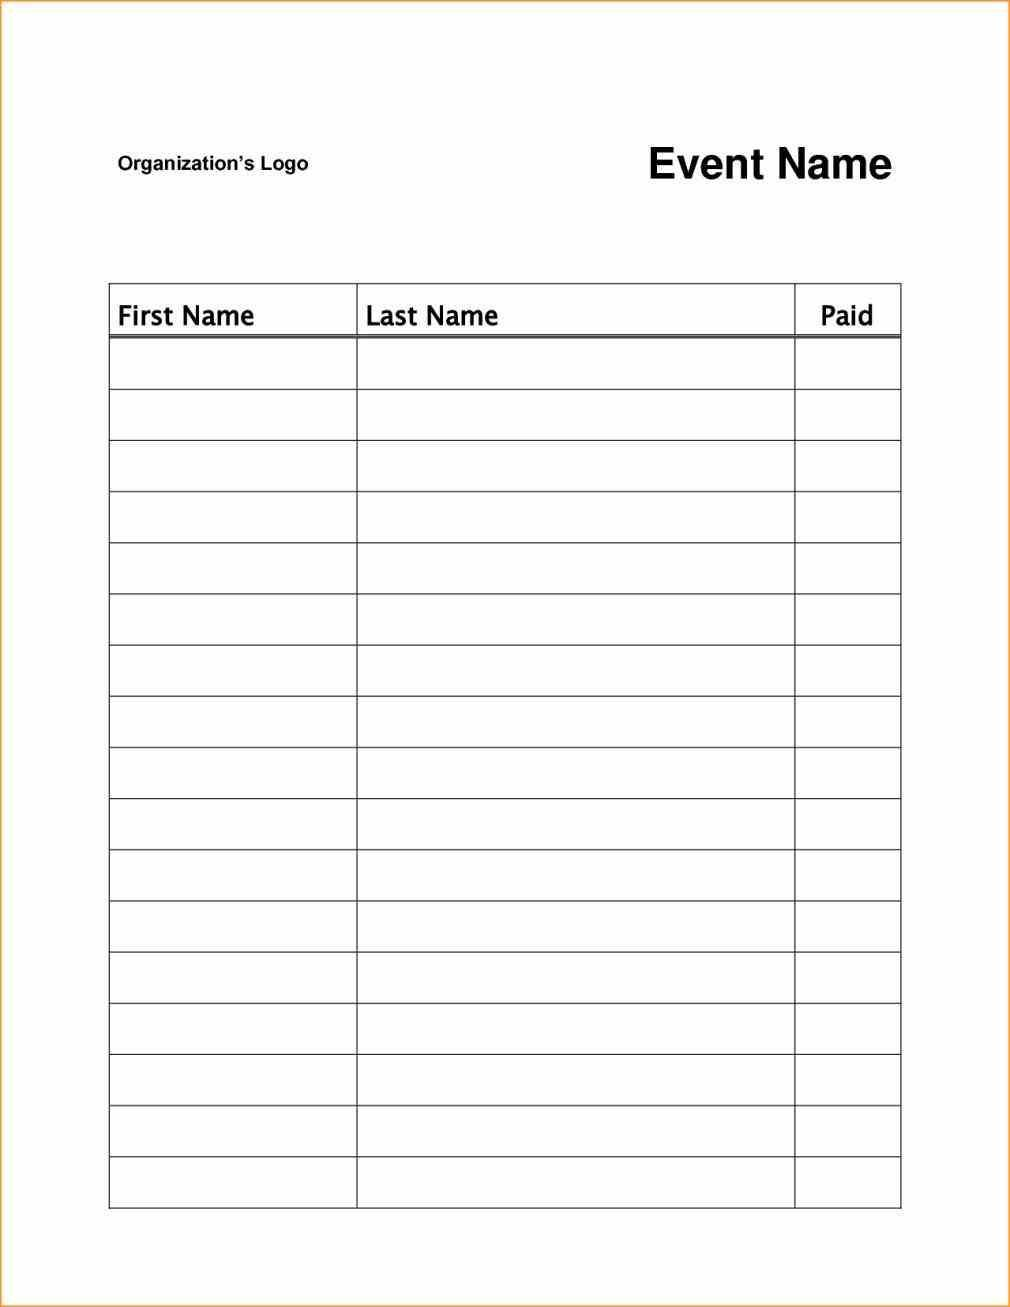 003 Magnificent Sign Up Sheet Template High Resolution  Volunteer In Word WorkFull